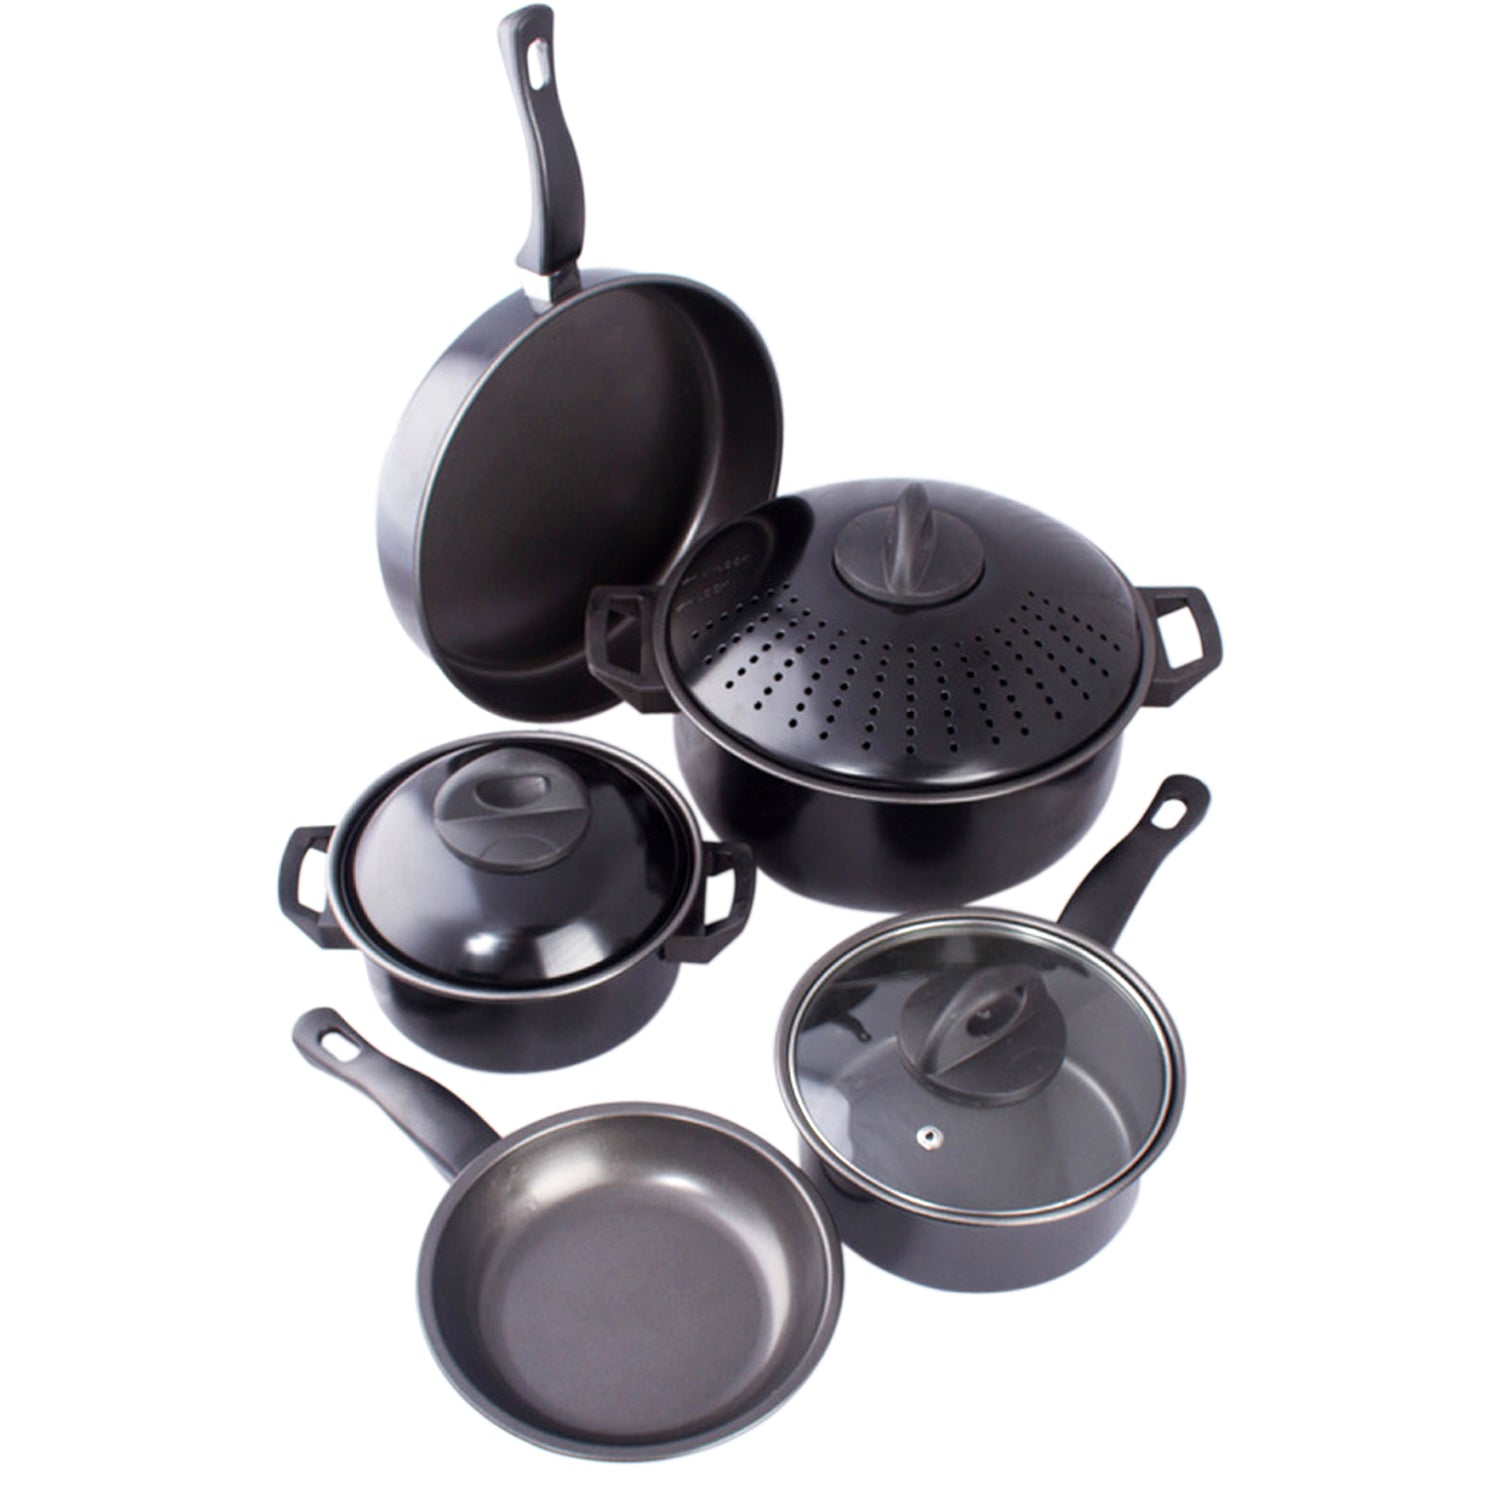 Cookware set Kitchen Pasta Pot W/ Strainer Lid Sauce Frying Pan 8 pcs. Set BLACK